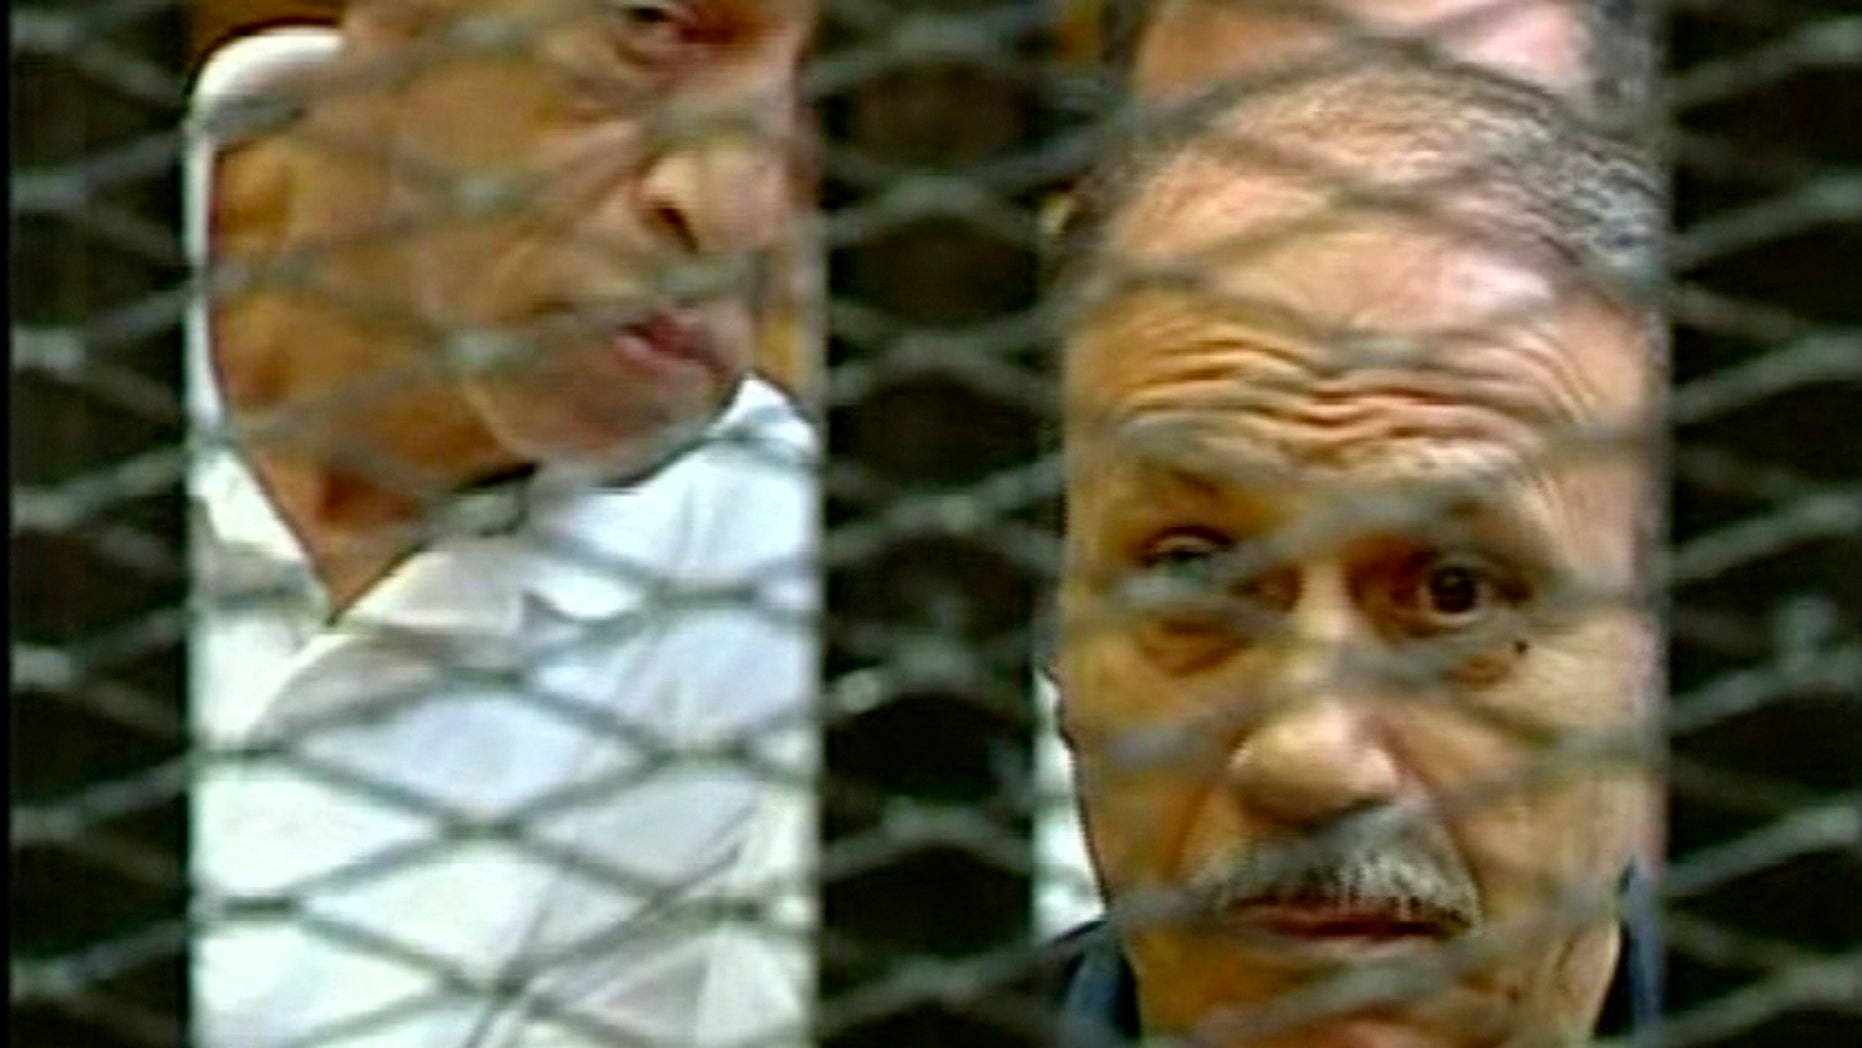 Egyptian Interior Minister Habib el-Adly, right, in a cage of mesh and iron bars during his trial in a Cairo courtroom Thursday Aug. 4, 2011.